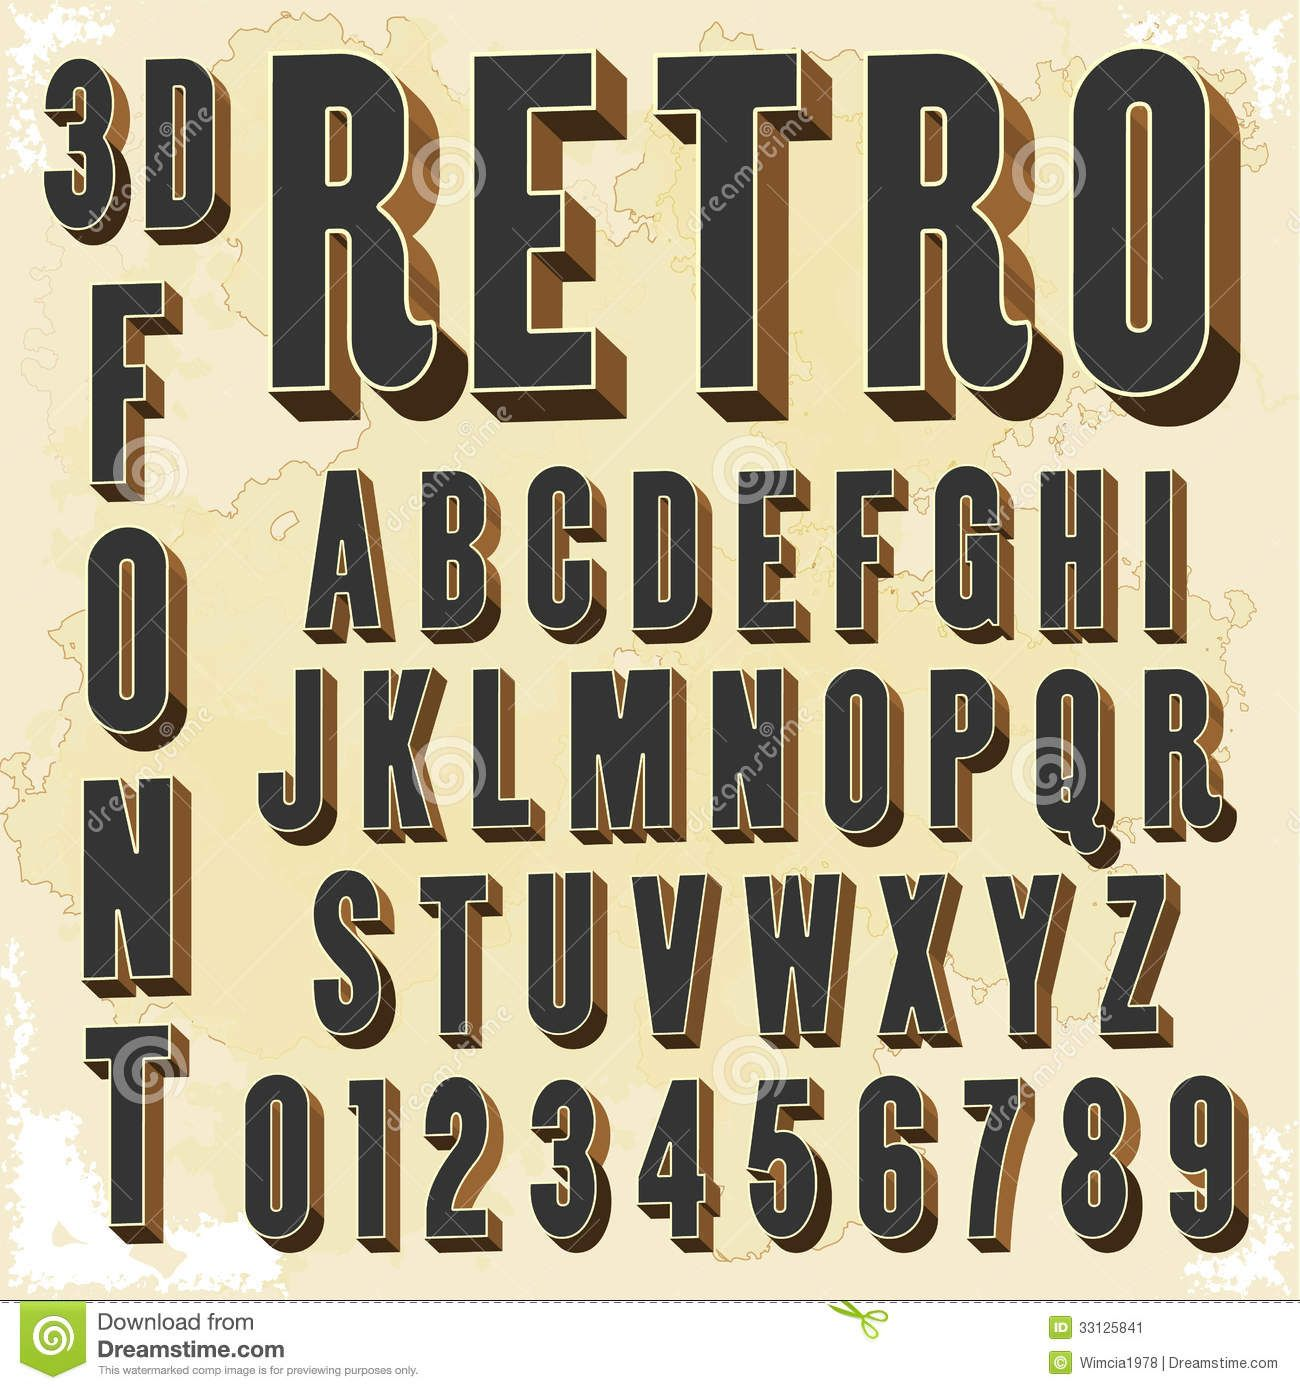 D-retro-type-font-vintage-typography-isolated-white-vector-illustration-33125841.jpg (1300×1390